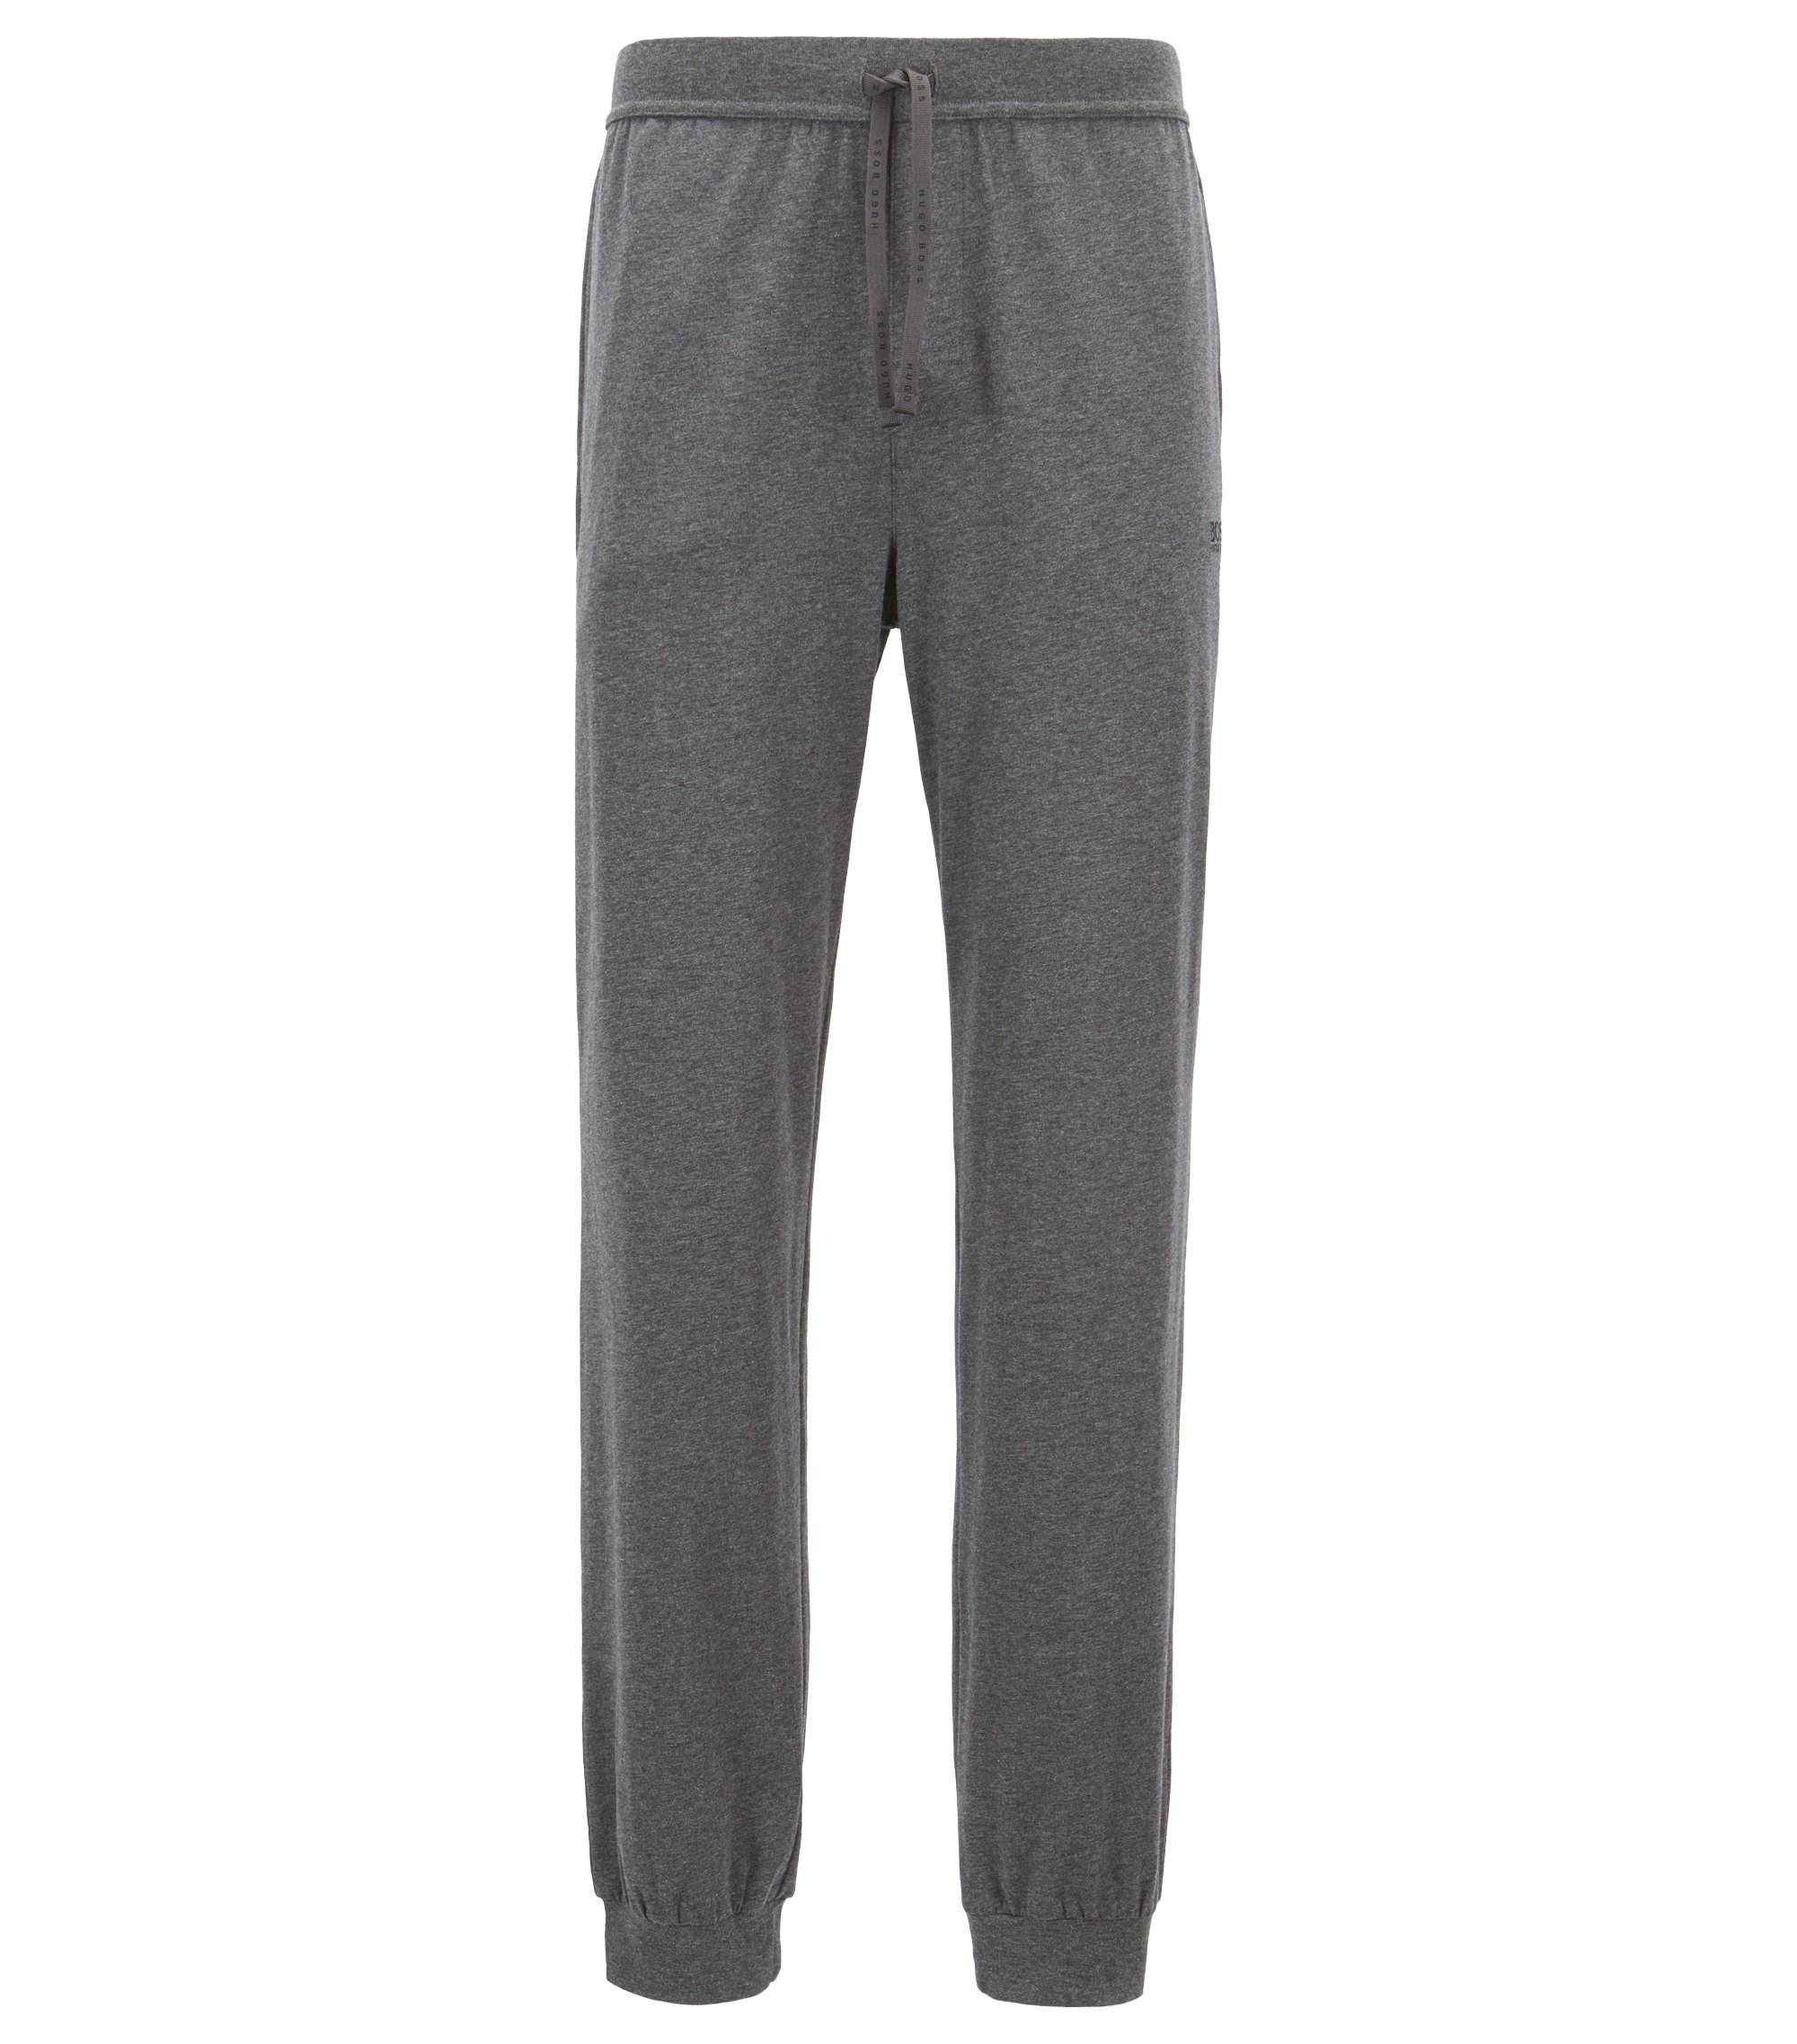 Cuffed loungewear trousers in stretch cotton, Grey